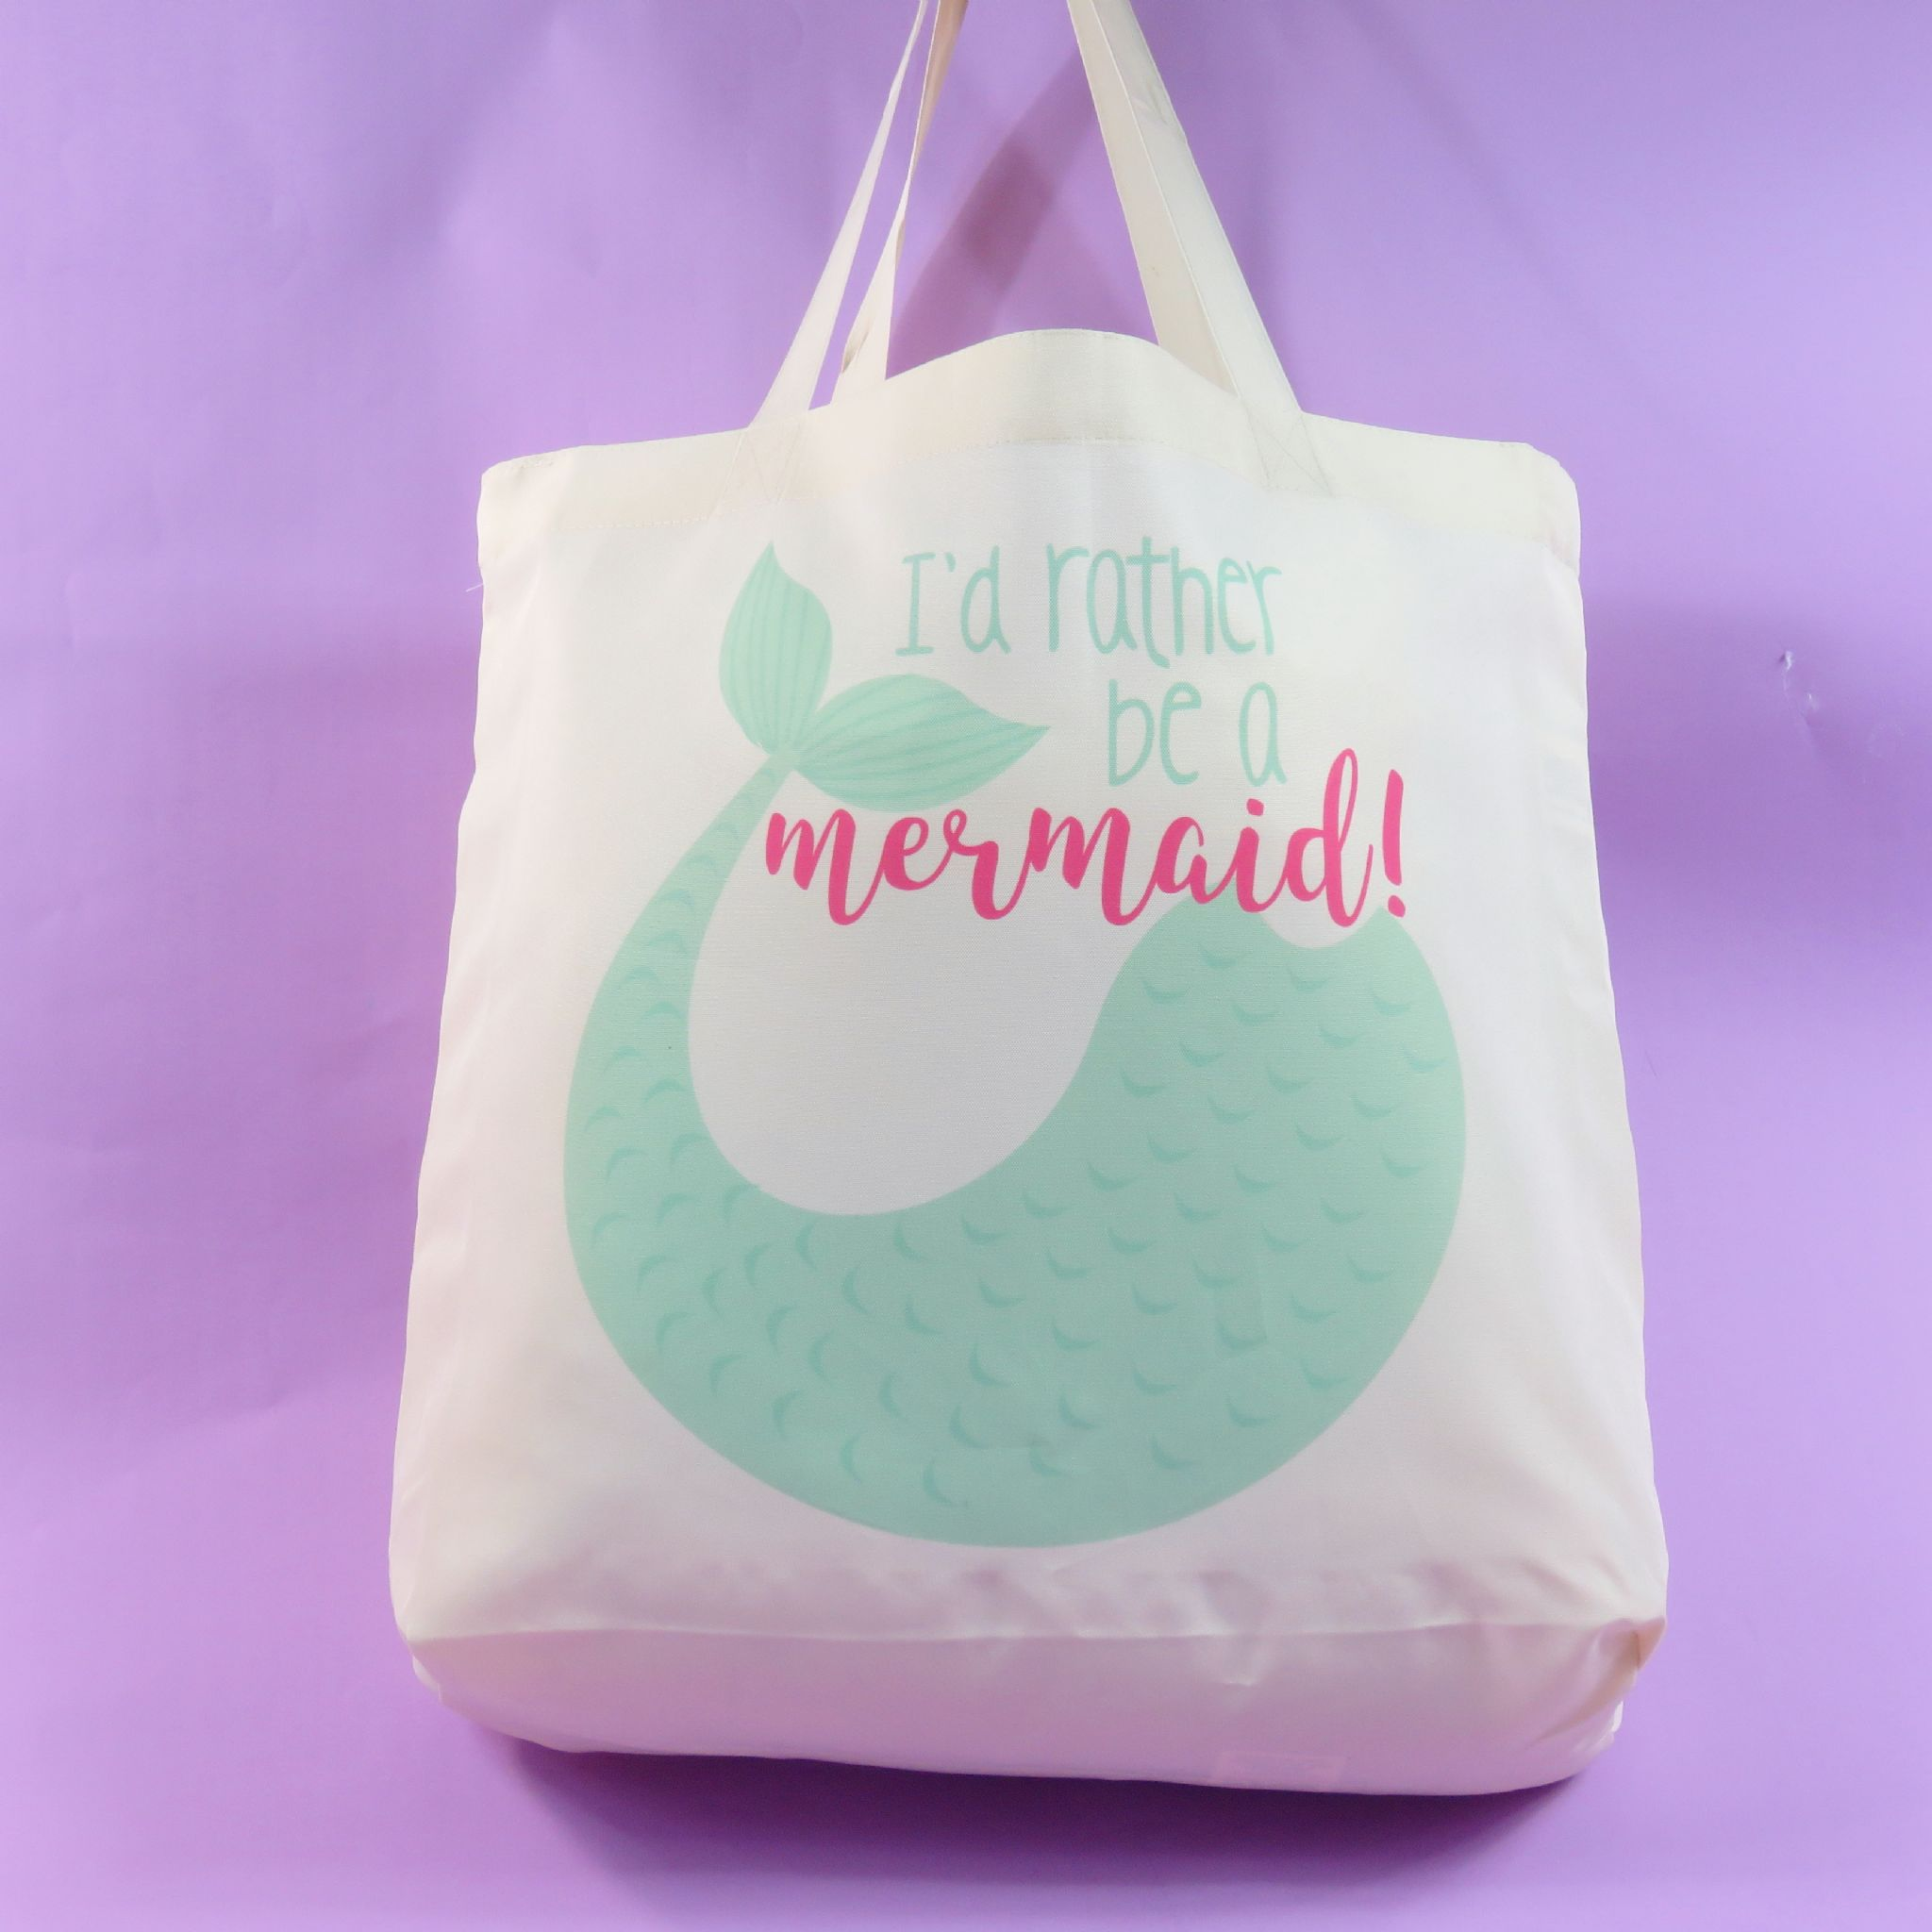 Bibs For Adults >> Mermaid Tote Bag Mermaid Bag for Life Mermaid Bag Adults mermaid bag for girls Rather be a